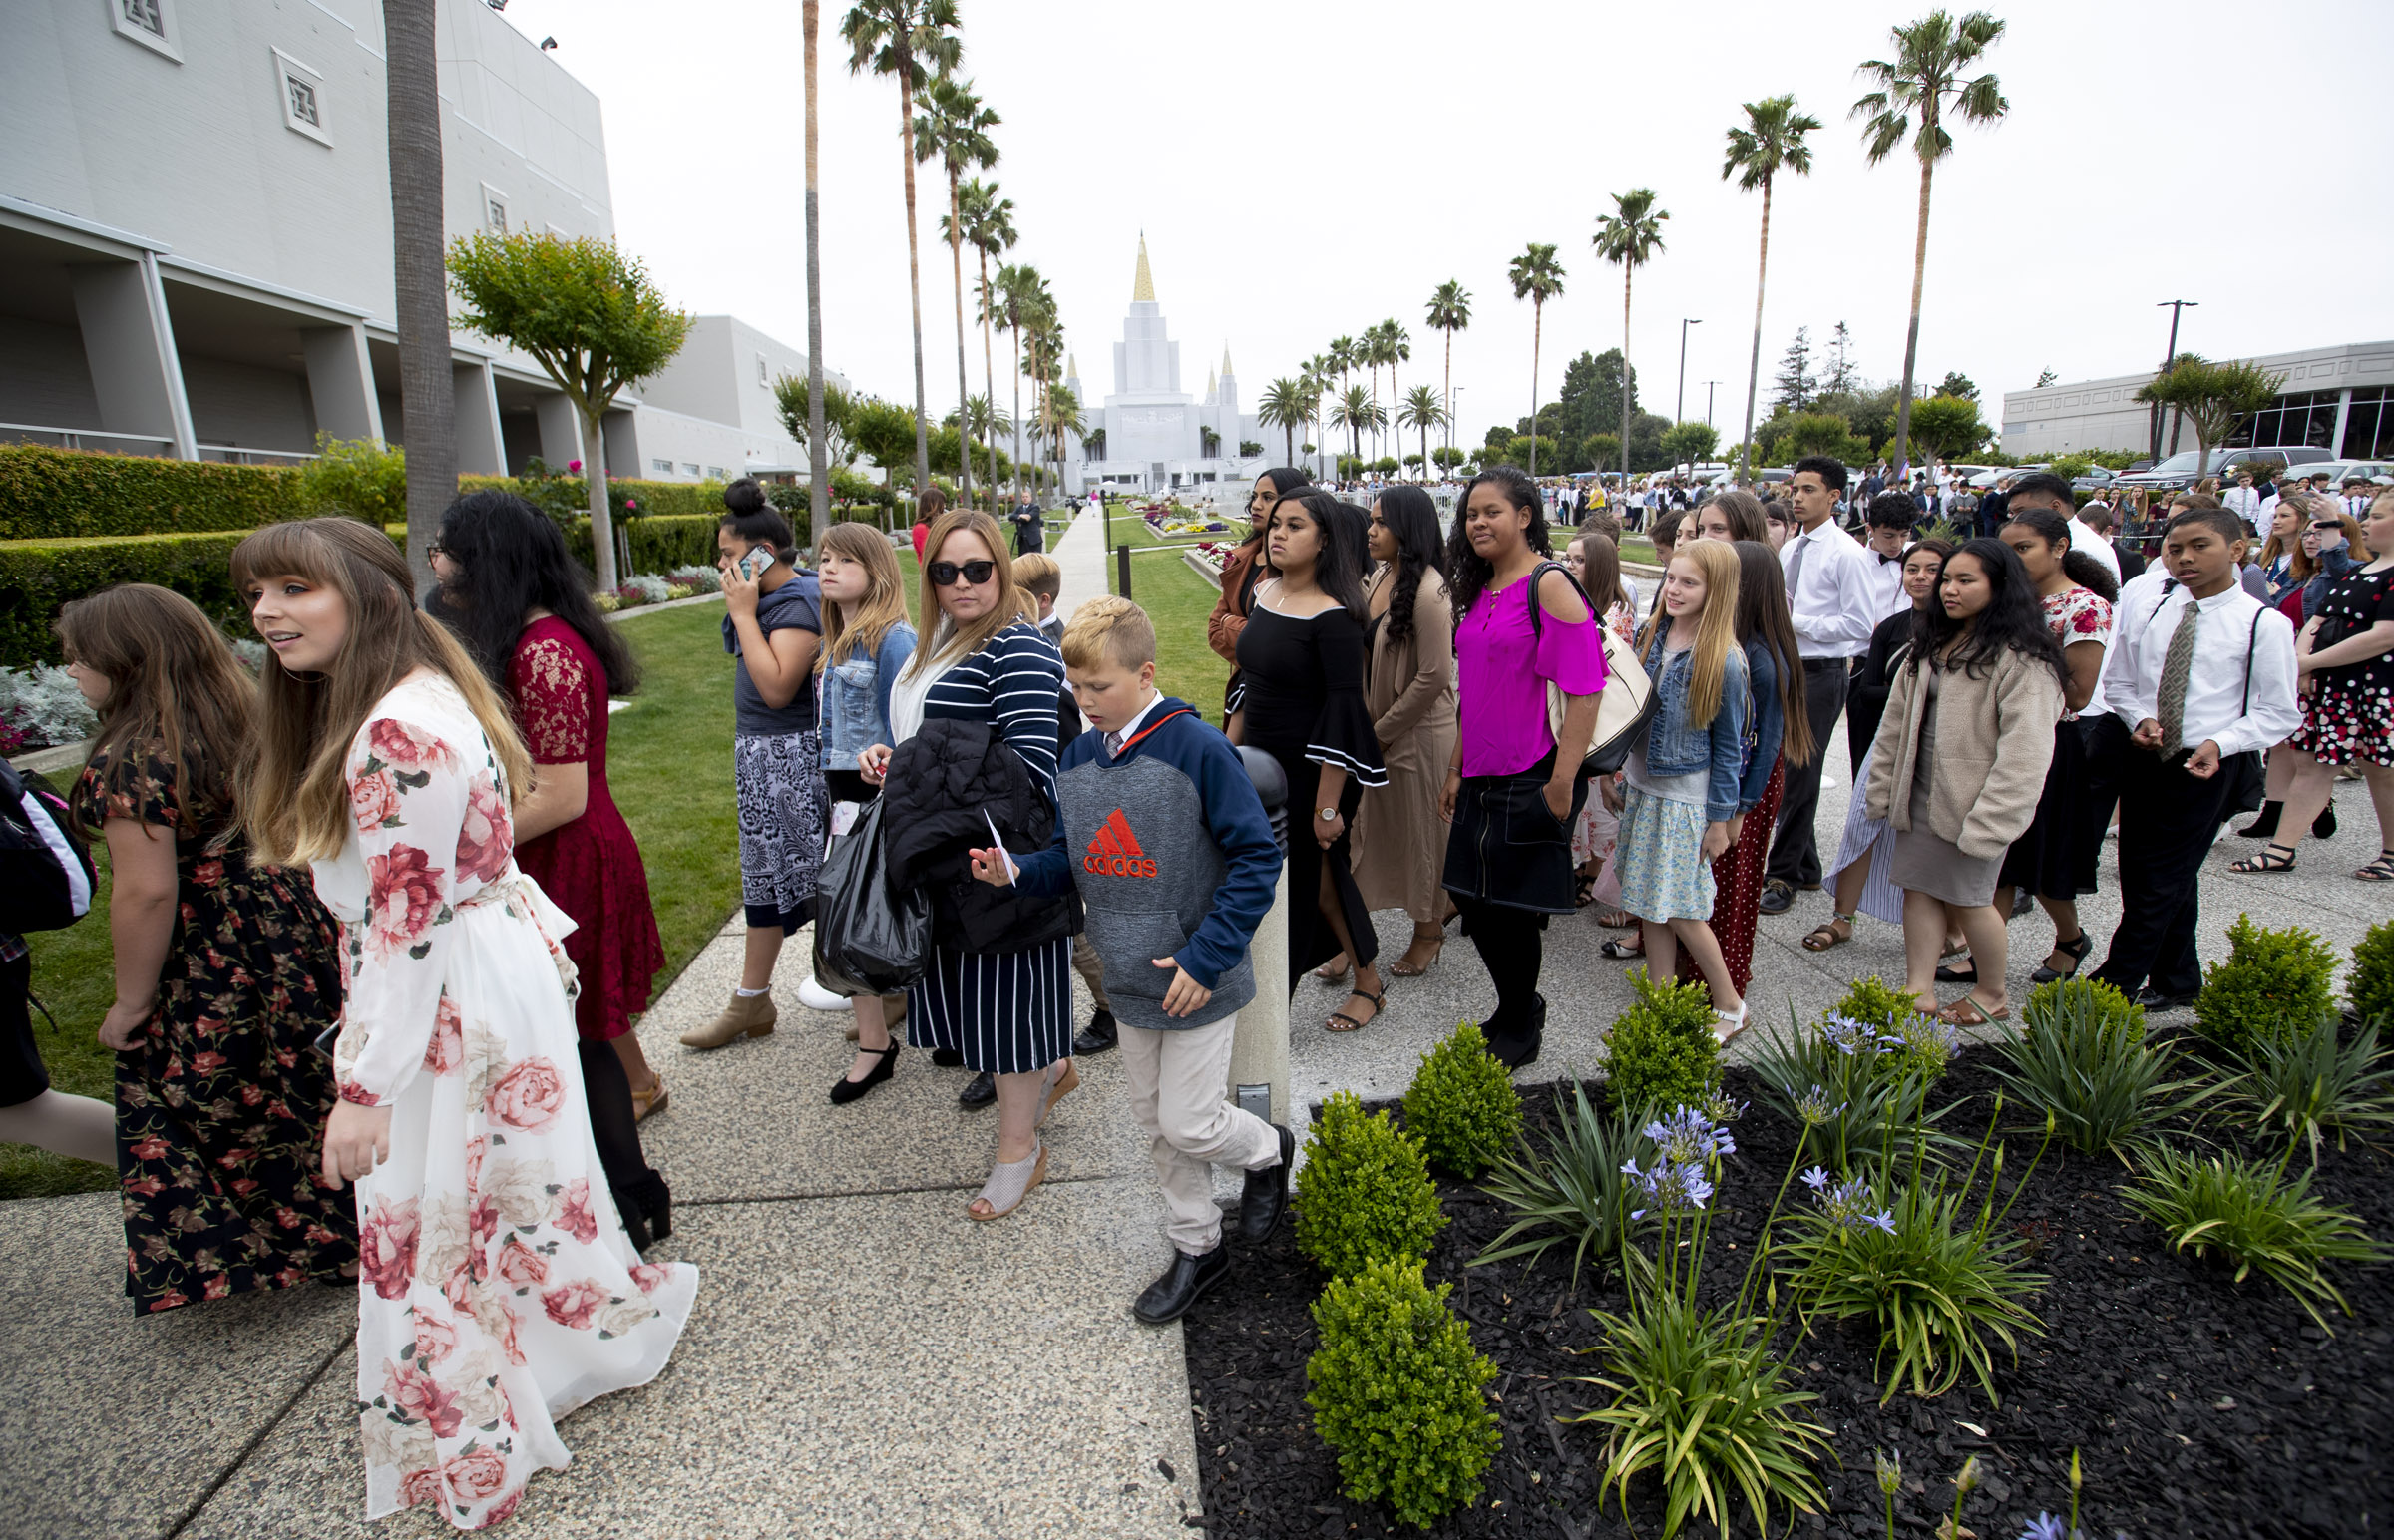 Youth wait in line to attend a devotional at the Interstake Center on the Oakland California Temple grounds on Saturday, June 15, 2019.